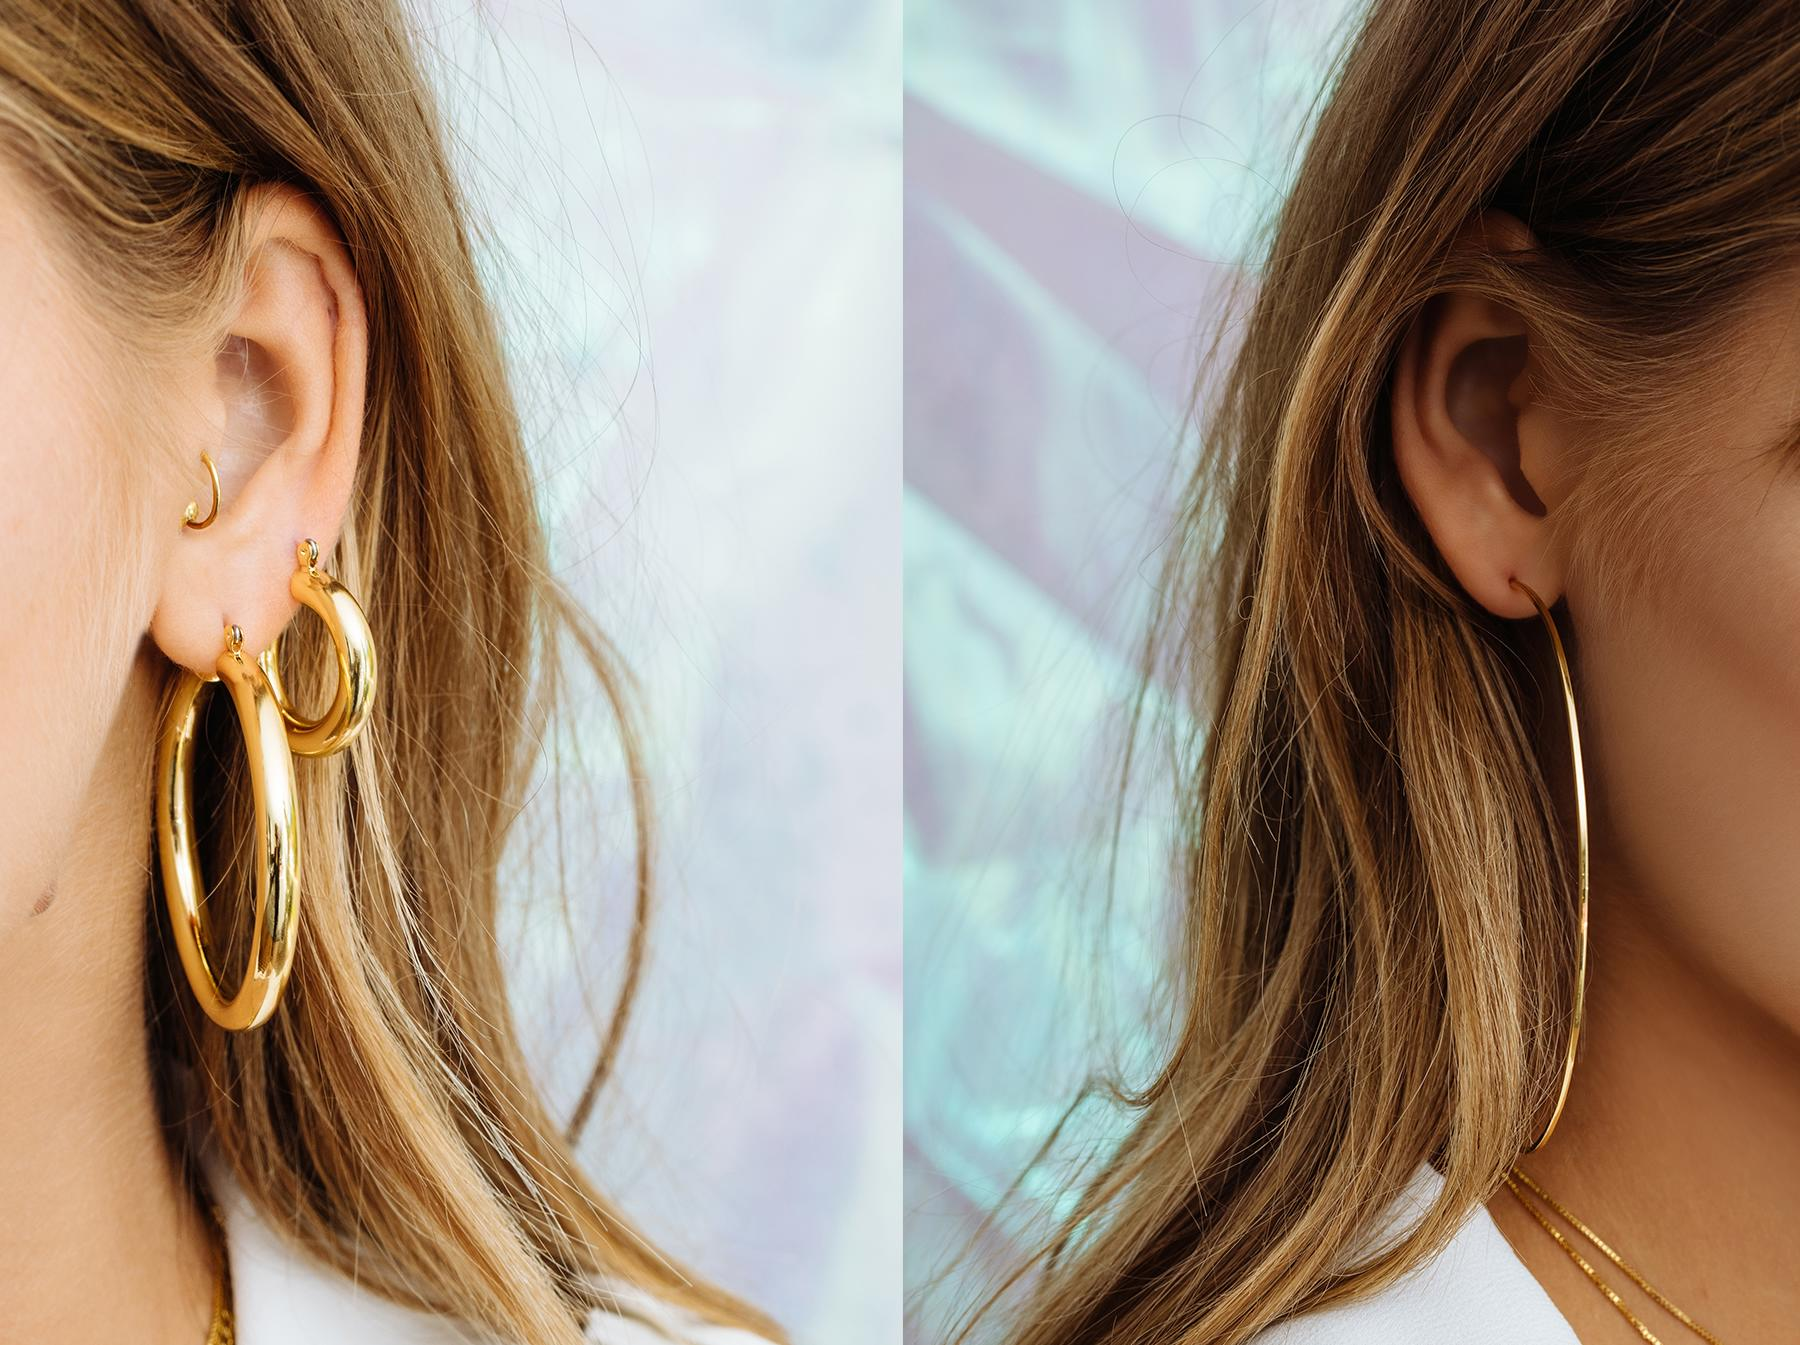 instagram earrings bridge earring gold and crescent aj x luv hoop hoops bec